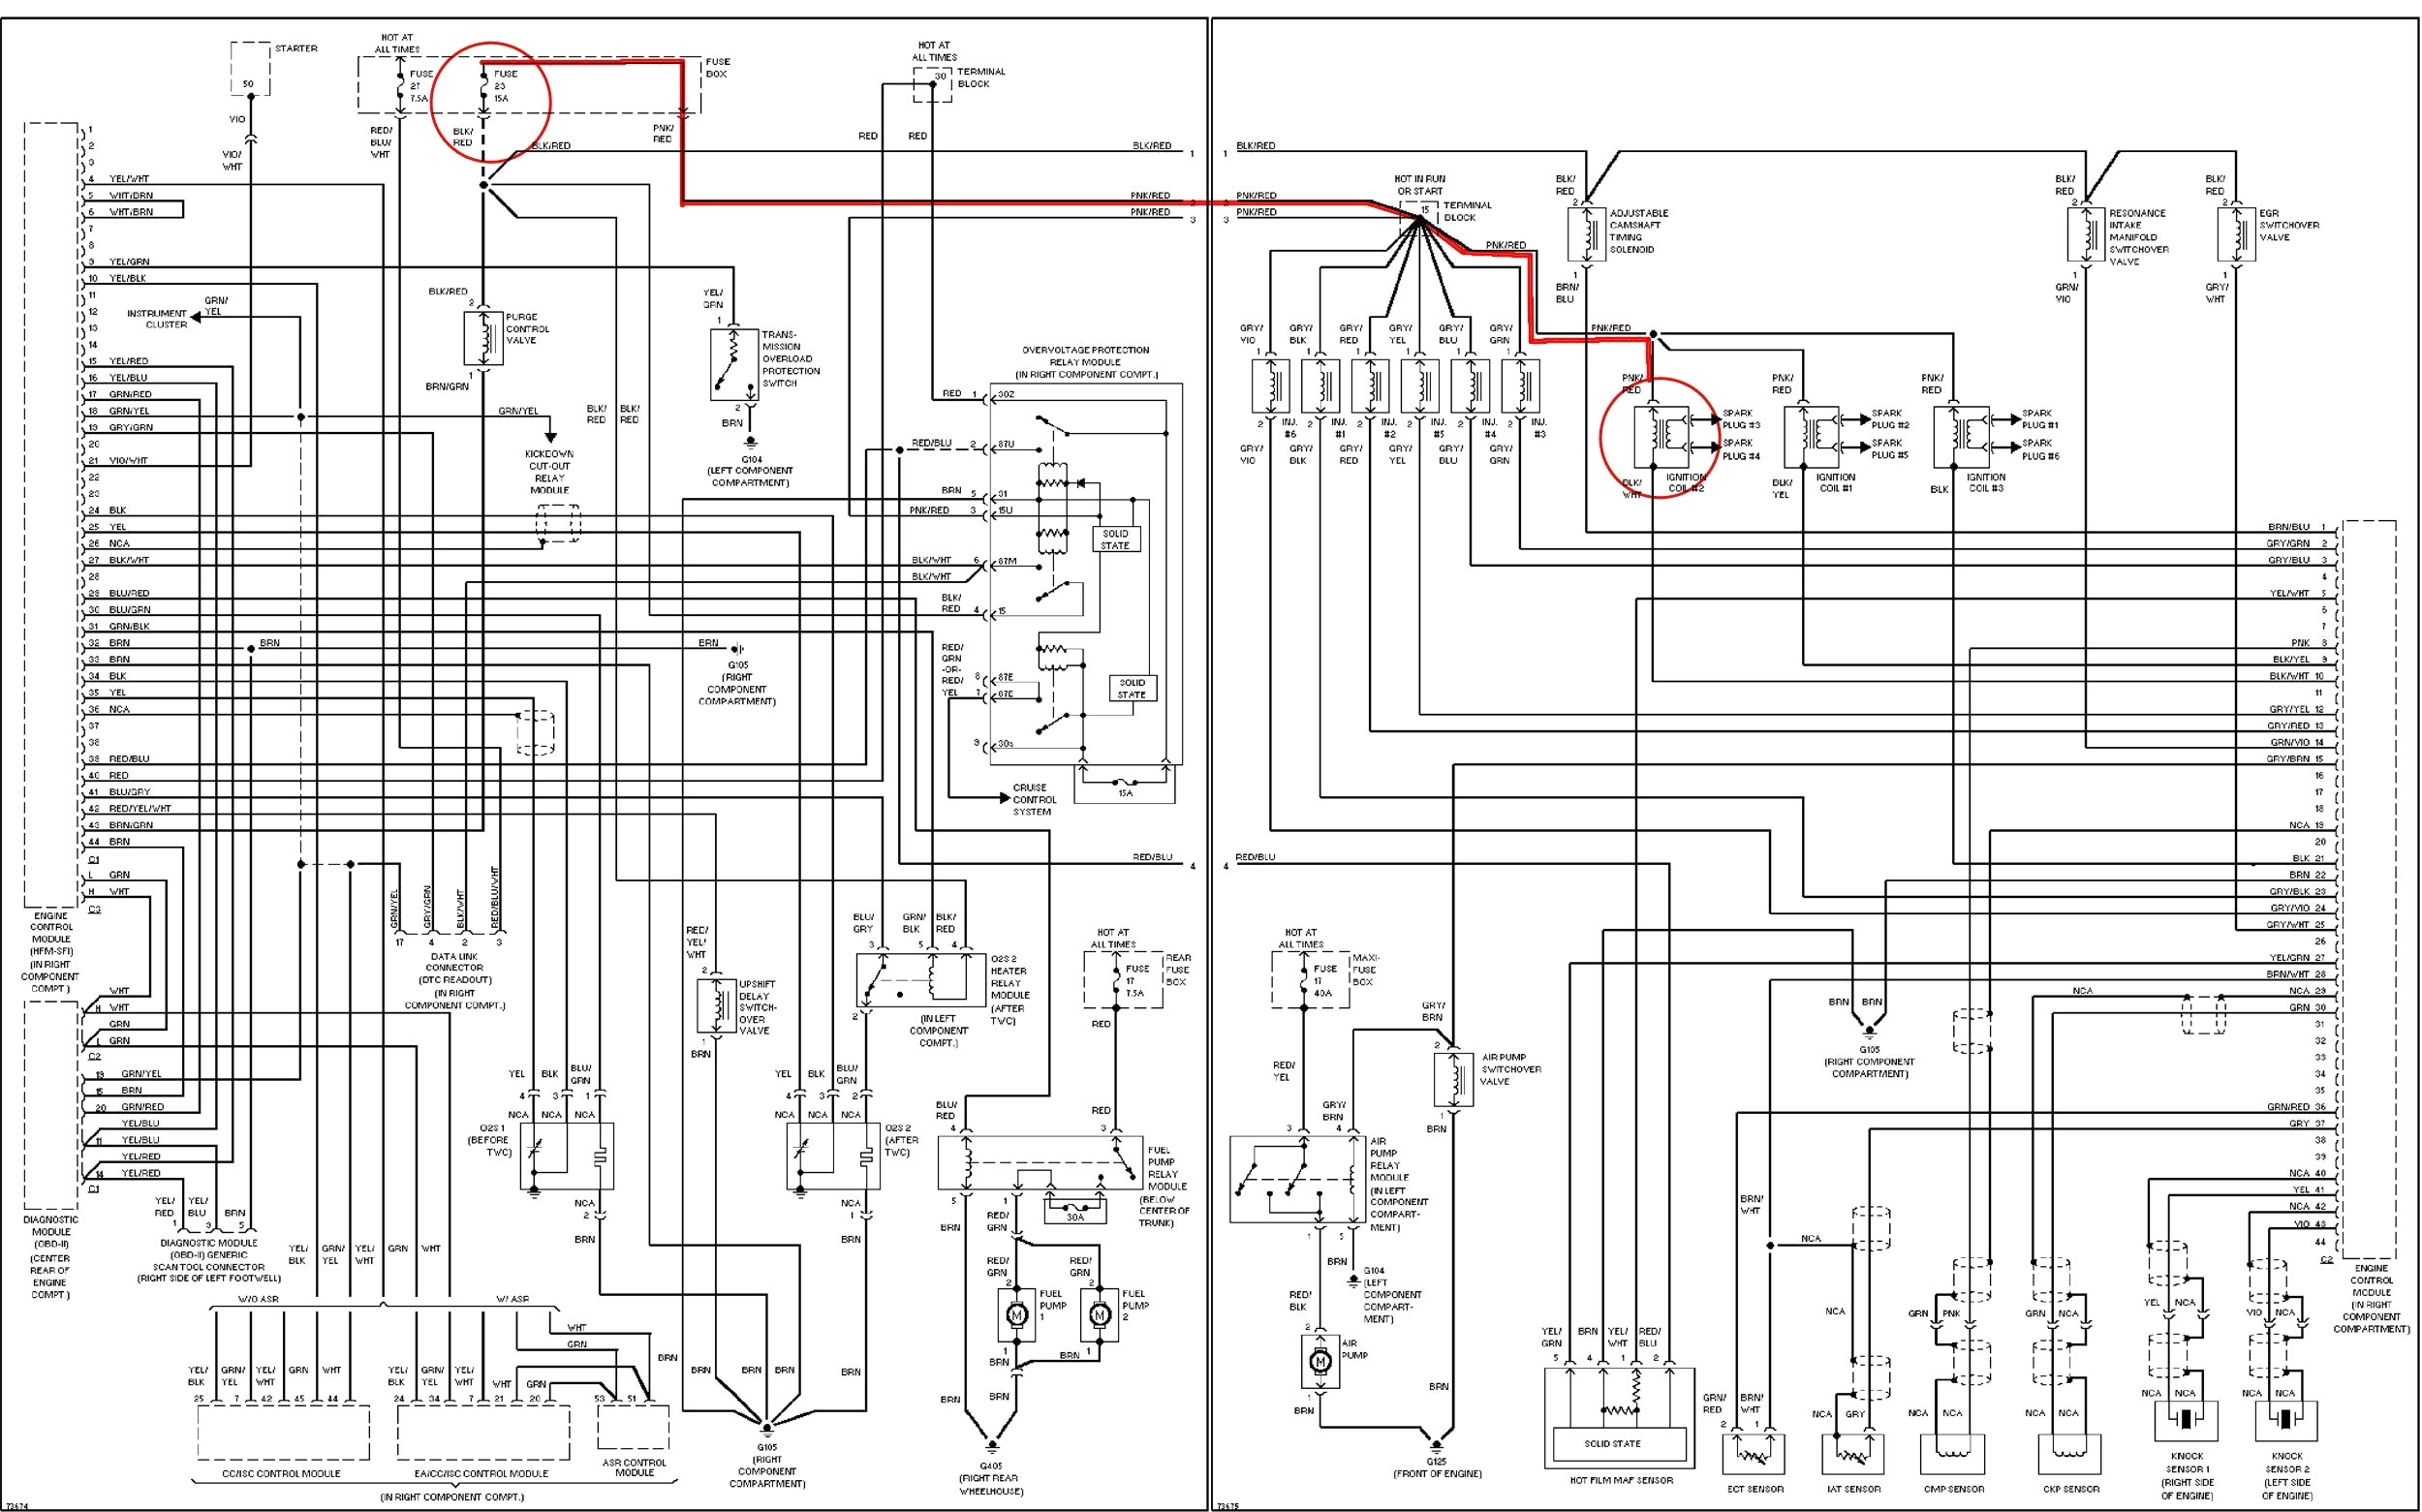 wiring diagram labeled